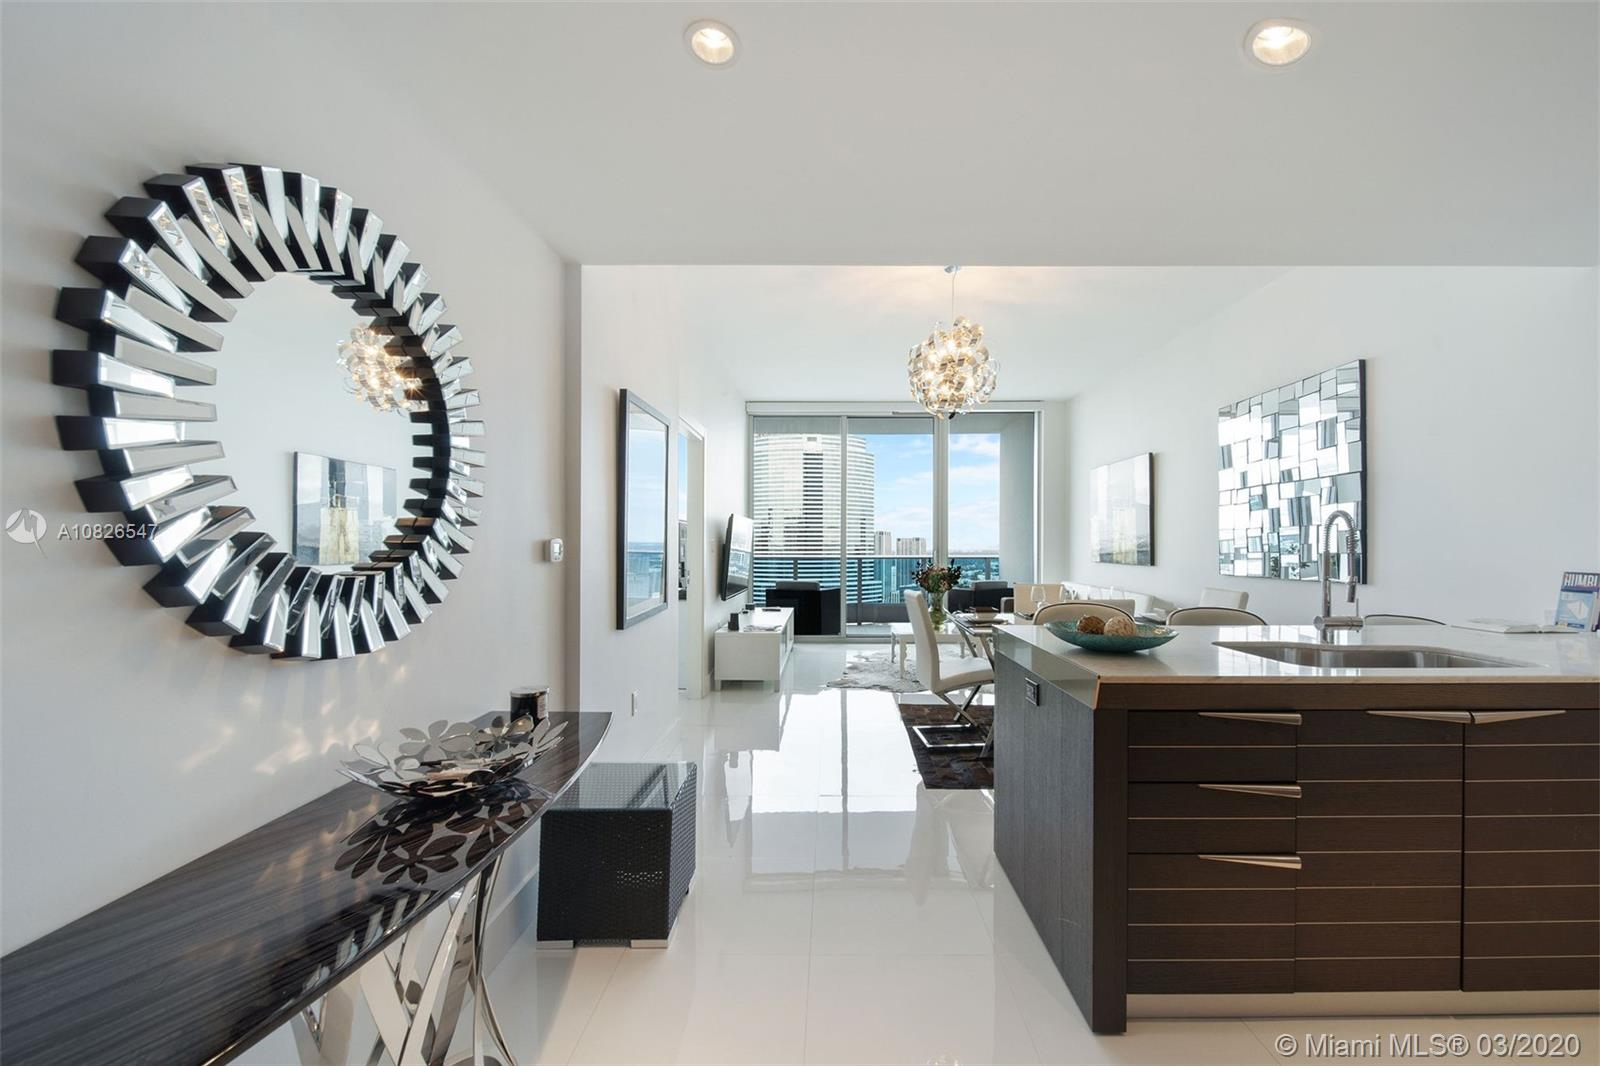 Epic Residences #4414 - 200 BISCAYNE BLVD WAY #4414, Miami, FL 33131